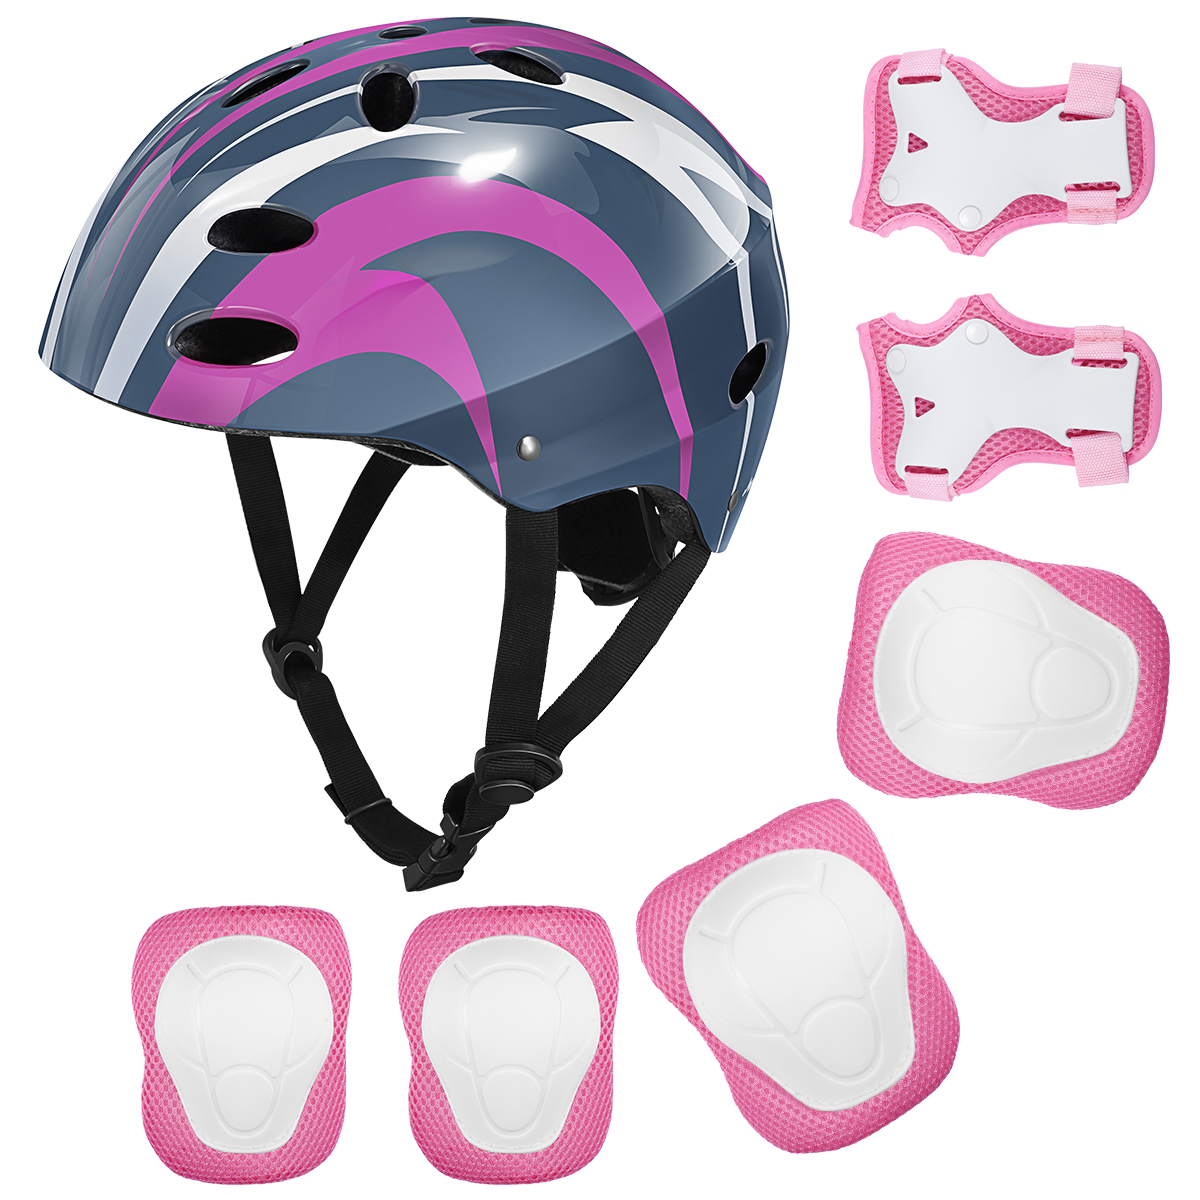 Details about  /7 Pcs Kids Protective Gear Set Cycling Helmet Knee Elbow Wrist Pads pink